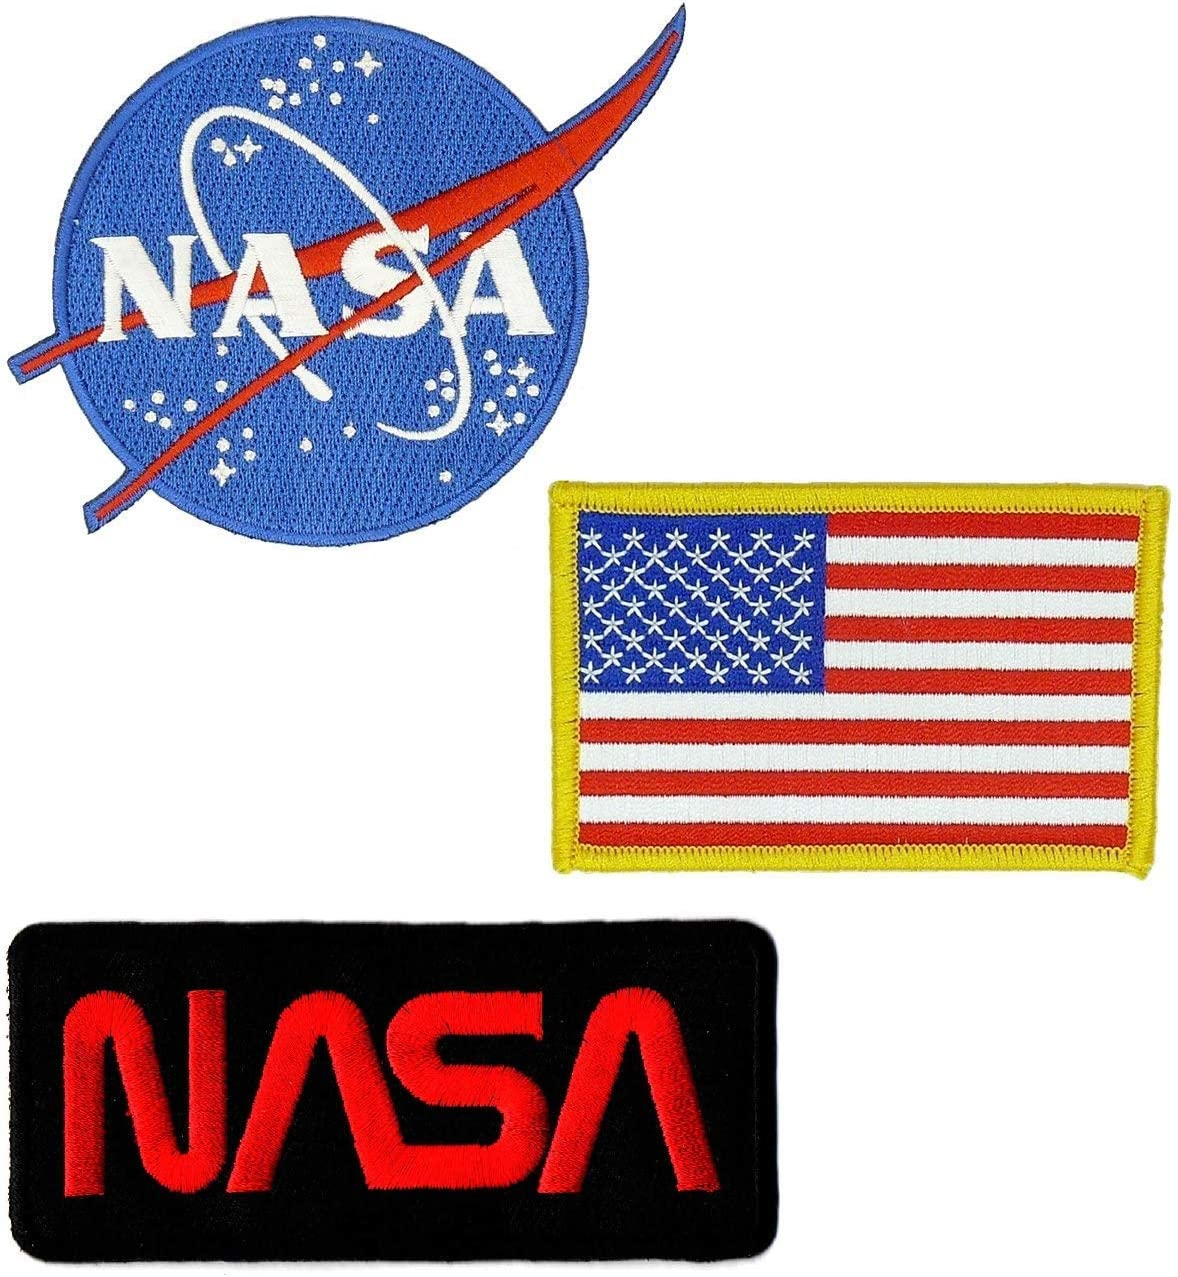 NASA Space Program Embroidered Iron Patch Astronauts Space Travel Collectibles